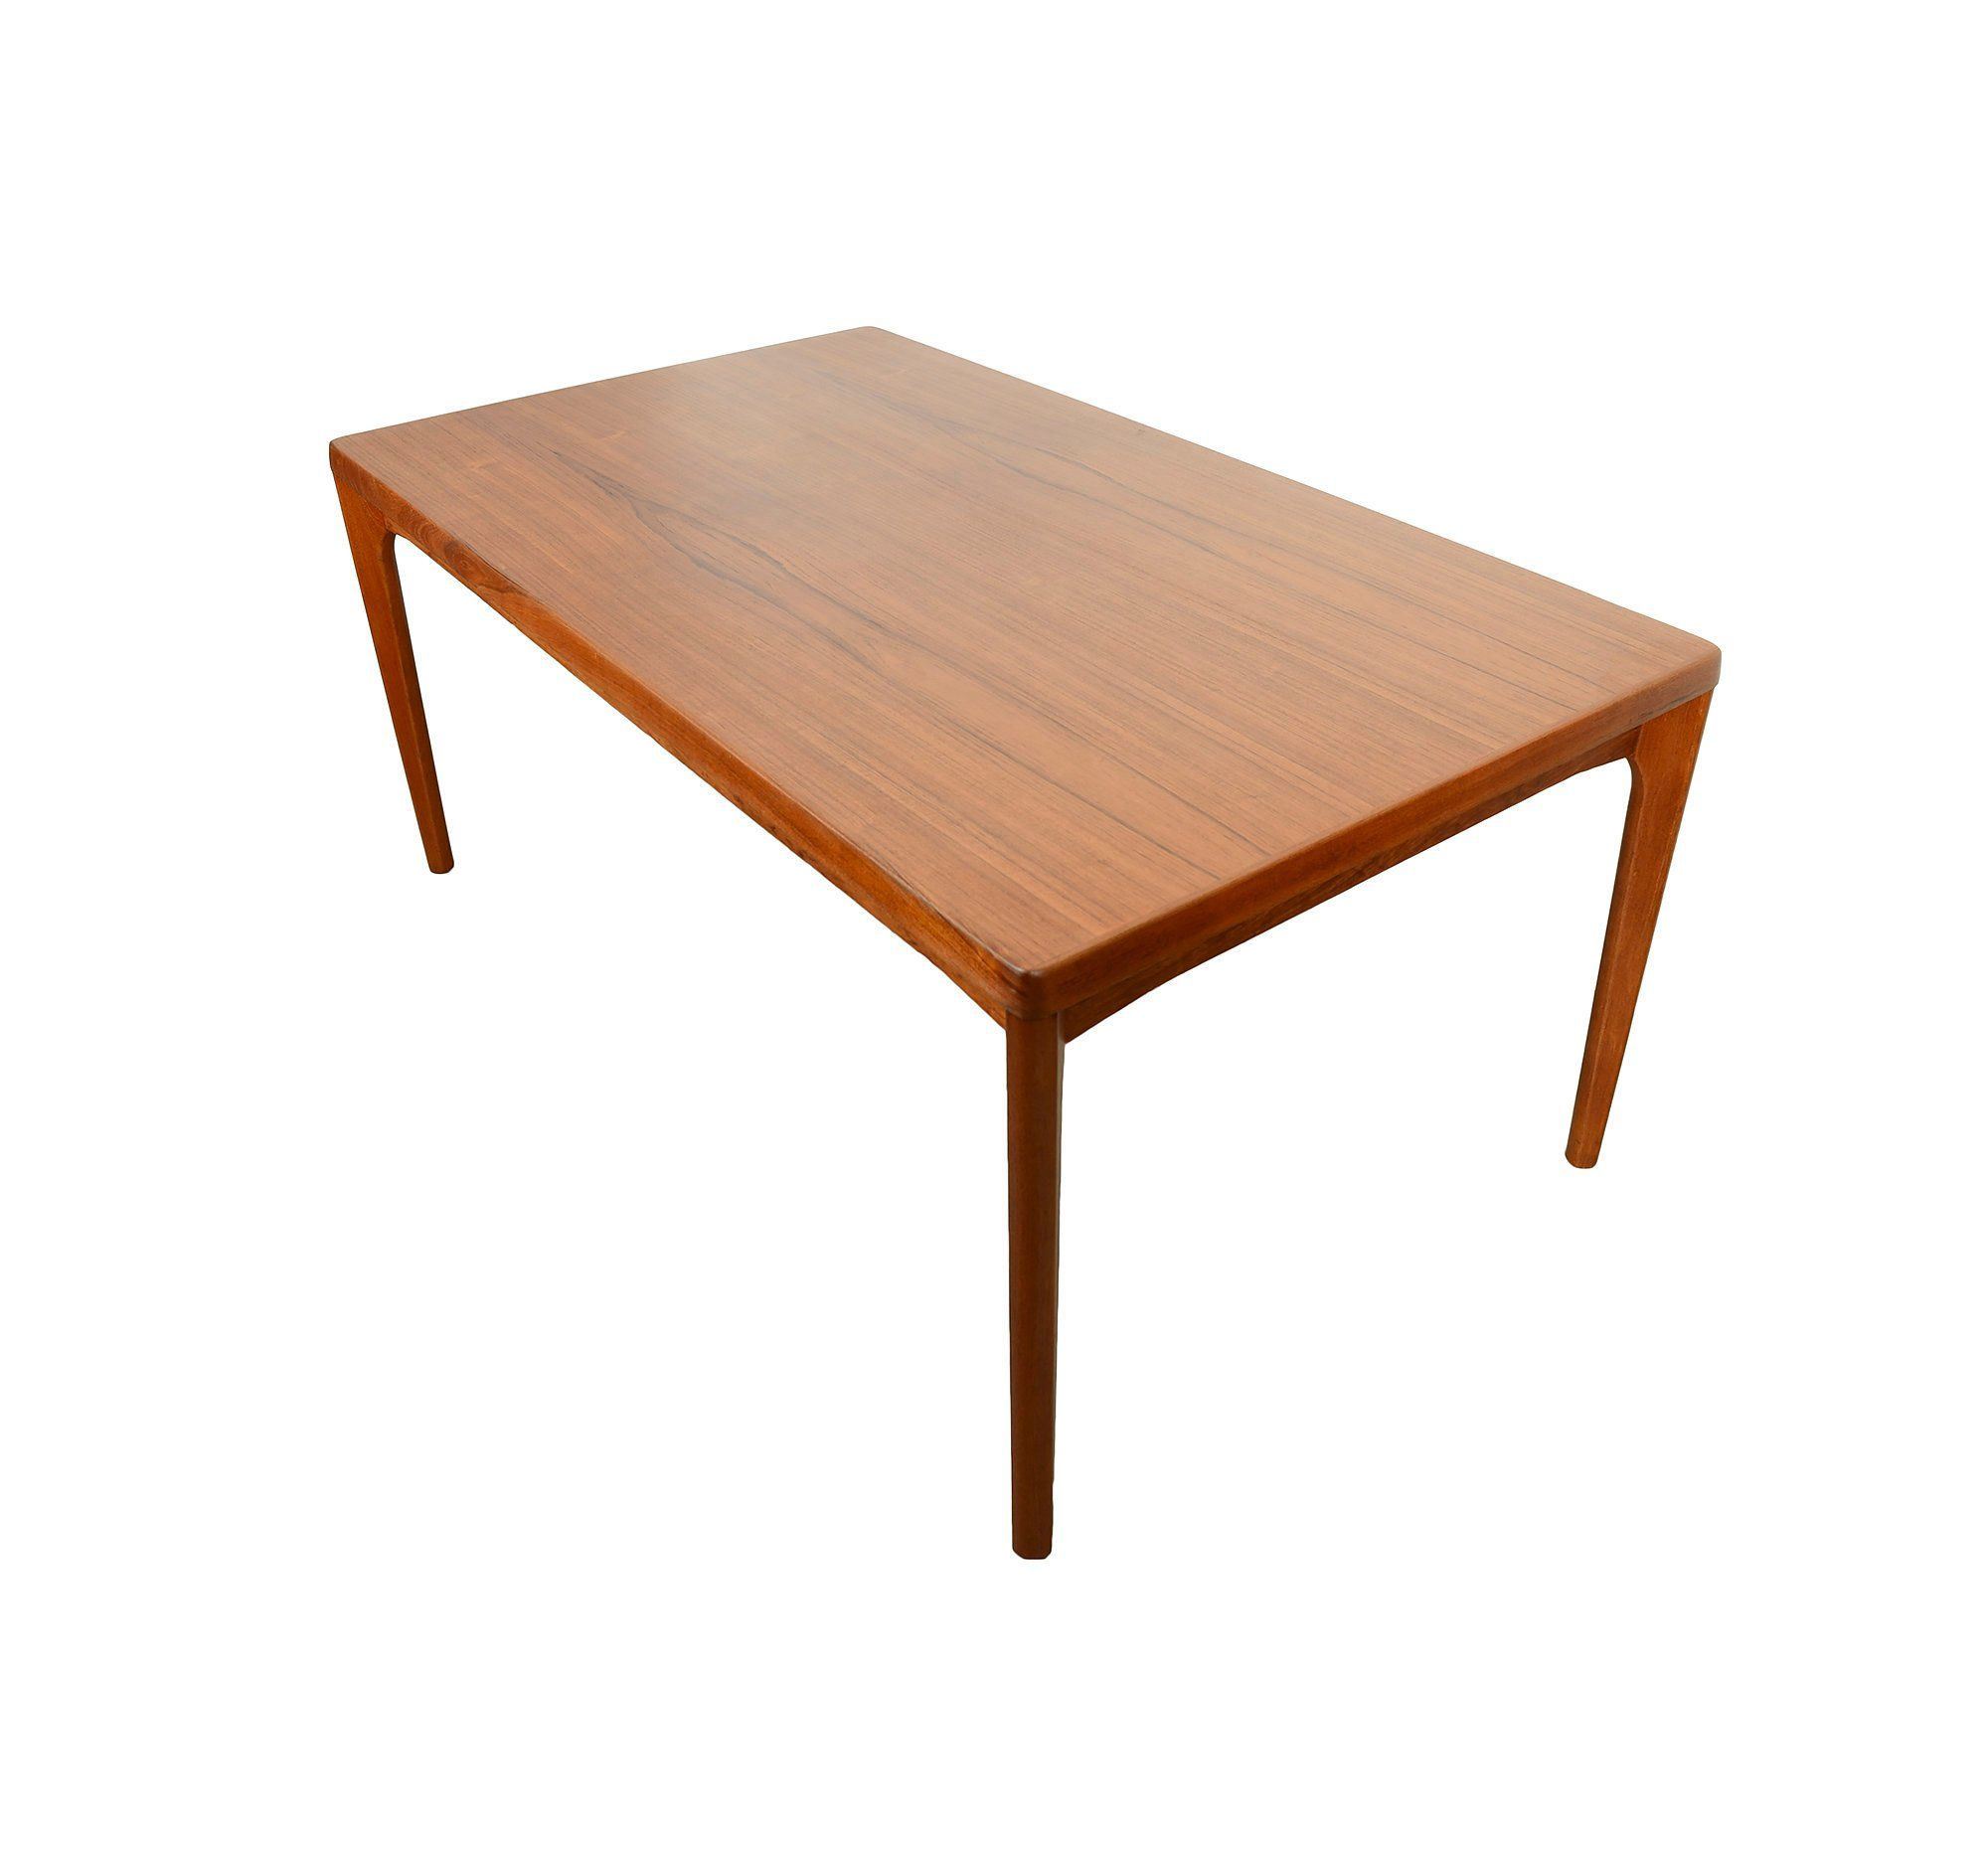 Large teak dining table with 2 leaves danish modern dutch leaves by hearthsidehome on etsy